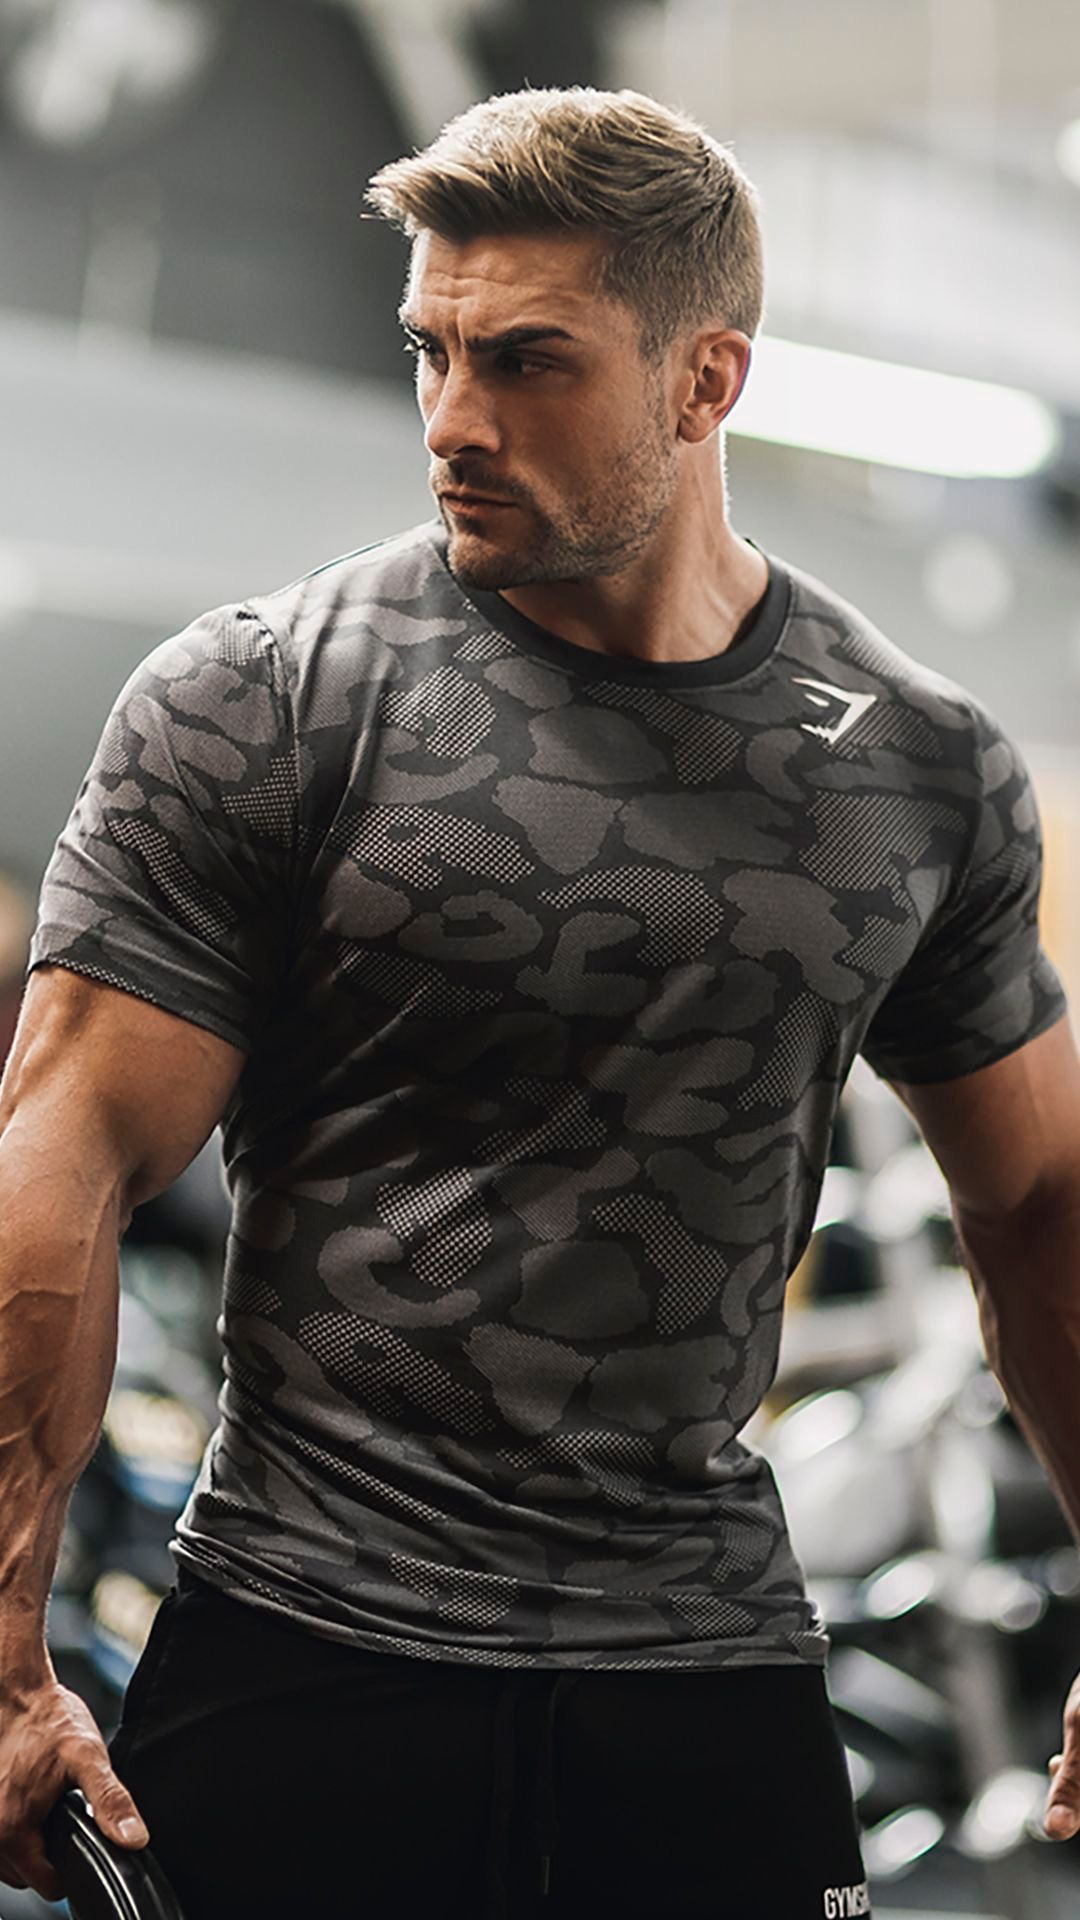 b7e3b7126f069 Corpo Fitness · The simple muscular look..... Camisetas Masculinas